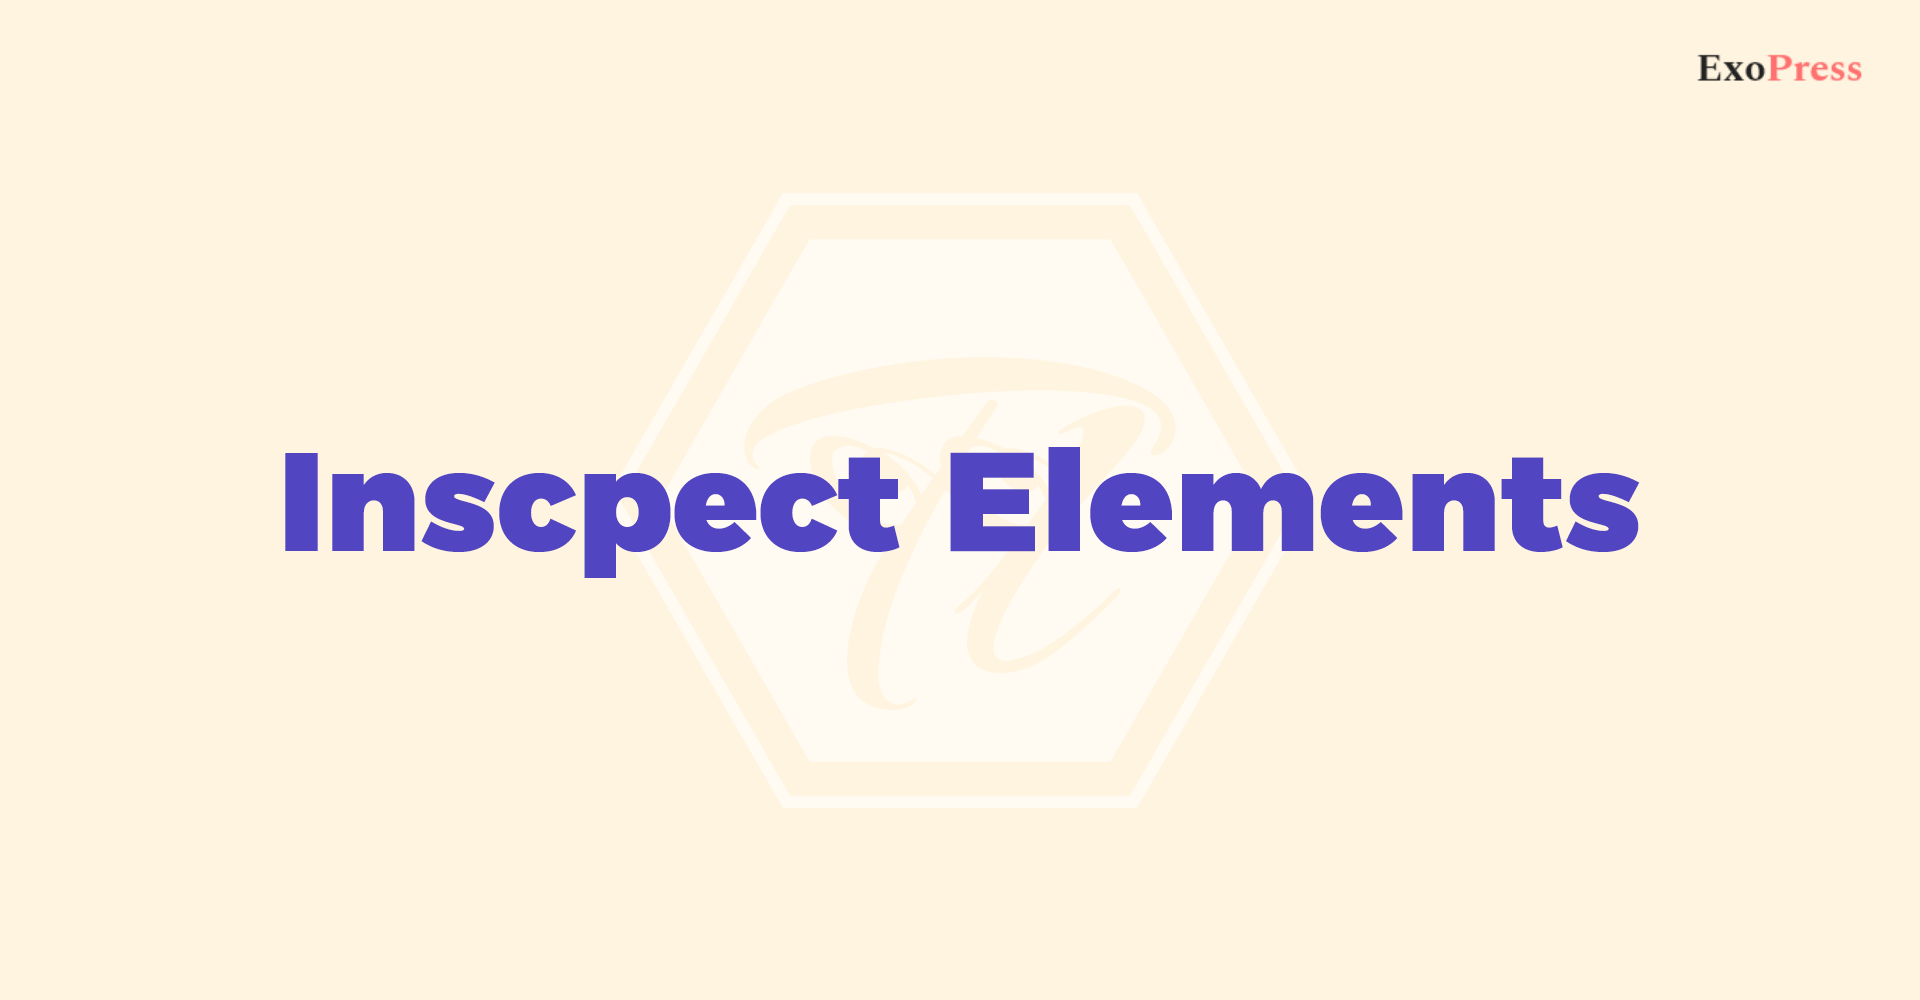 inspect_elements 1 1 2